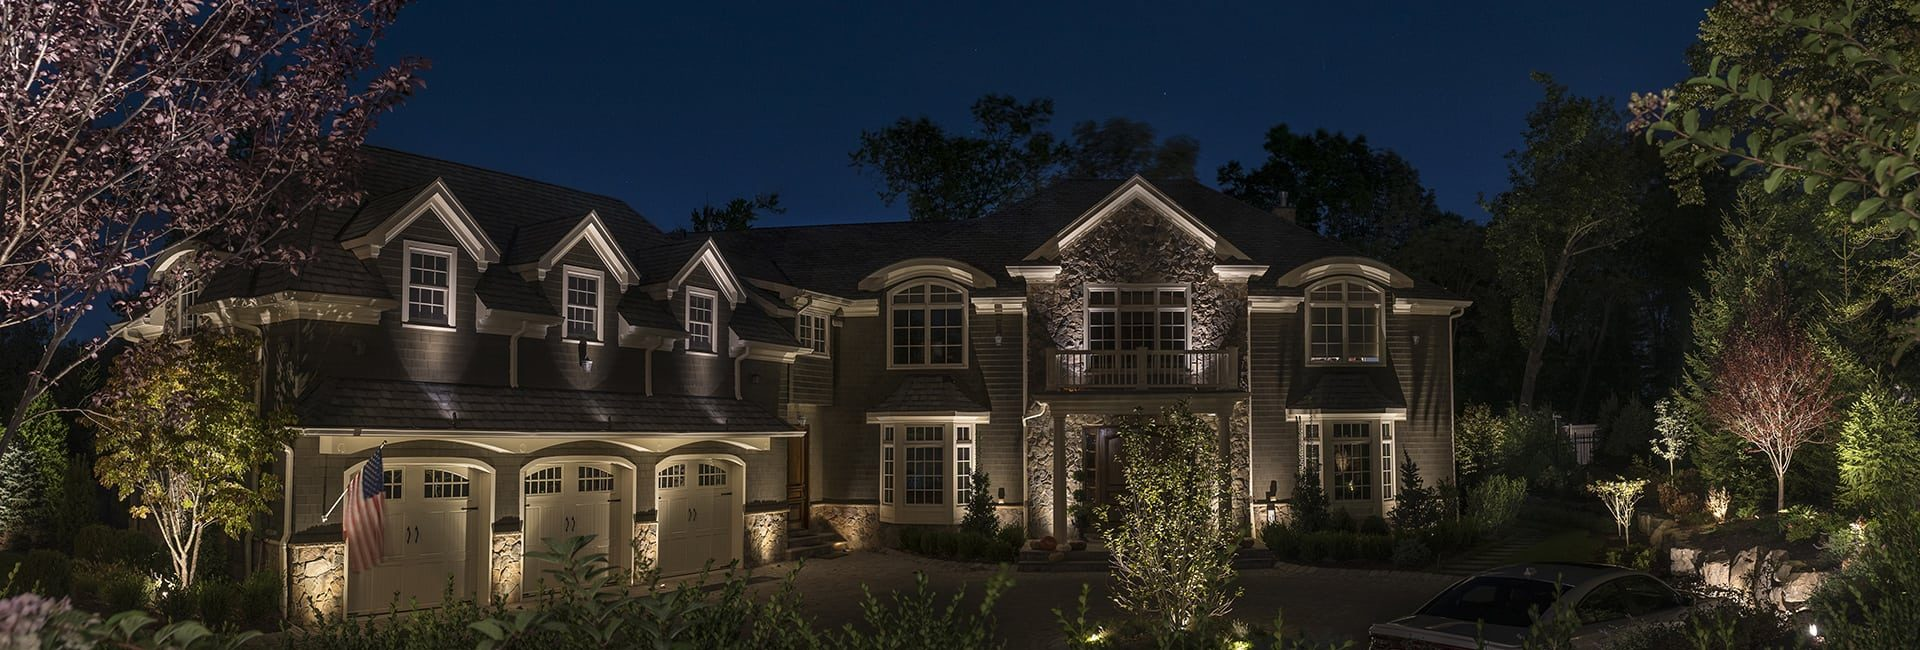 Landscape Lighting - Architectural Lighting - Front of Home